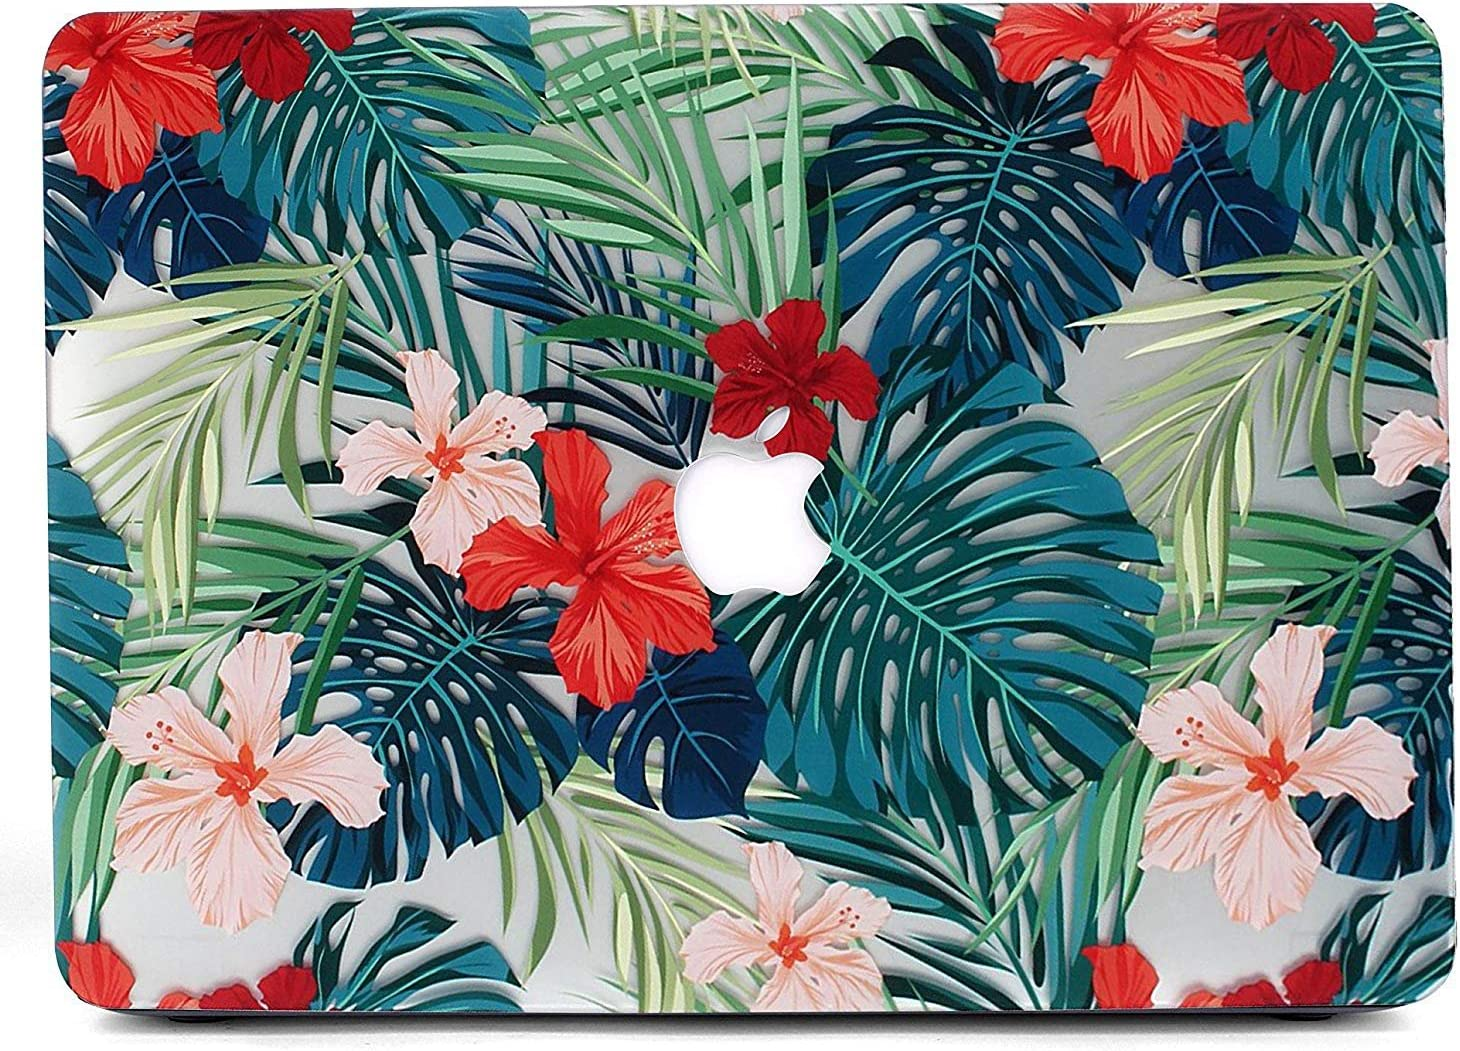 Case for L2W MacBook Air 13, Matte Print Tropical Palm Leaves Pattern Coated PC Hard Protective Case Cover Compatible with MacBook Air 13 inch (Model: A1369 and A1466) - Palm Leaves & Red Flowers